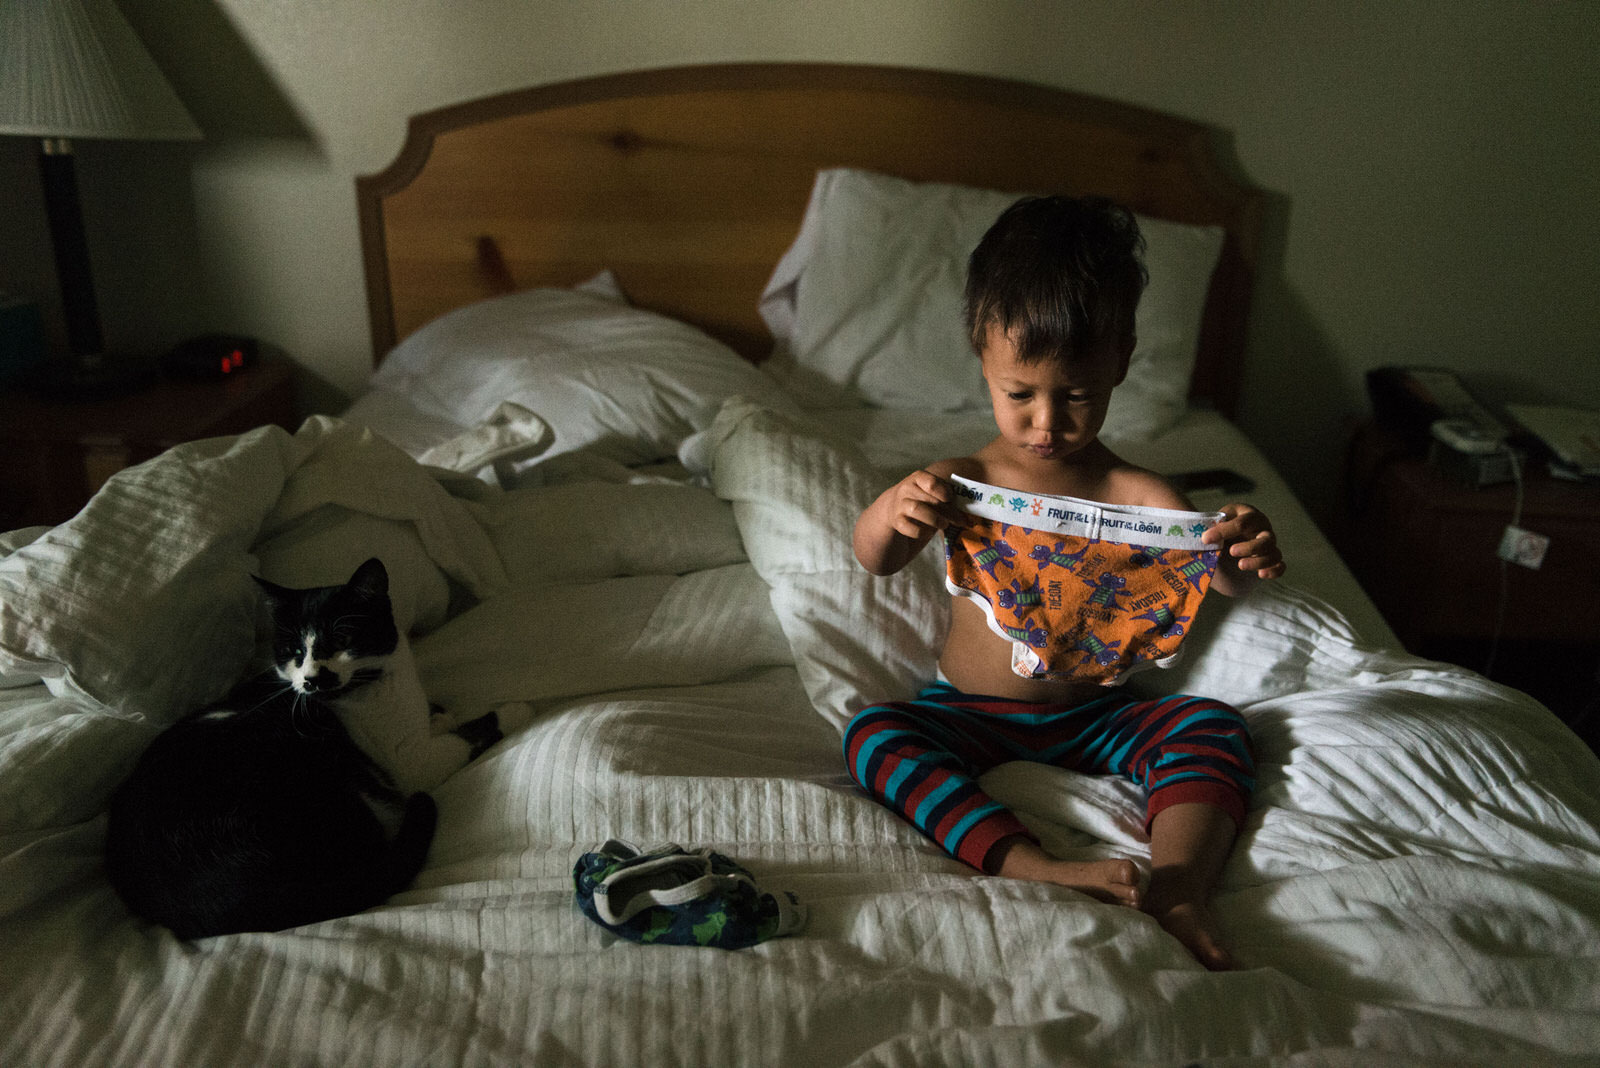 Age 2. After waking up, Harry selects his clothing for the day. He ponders underwear before moving onto pants and shirts.